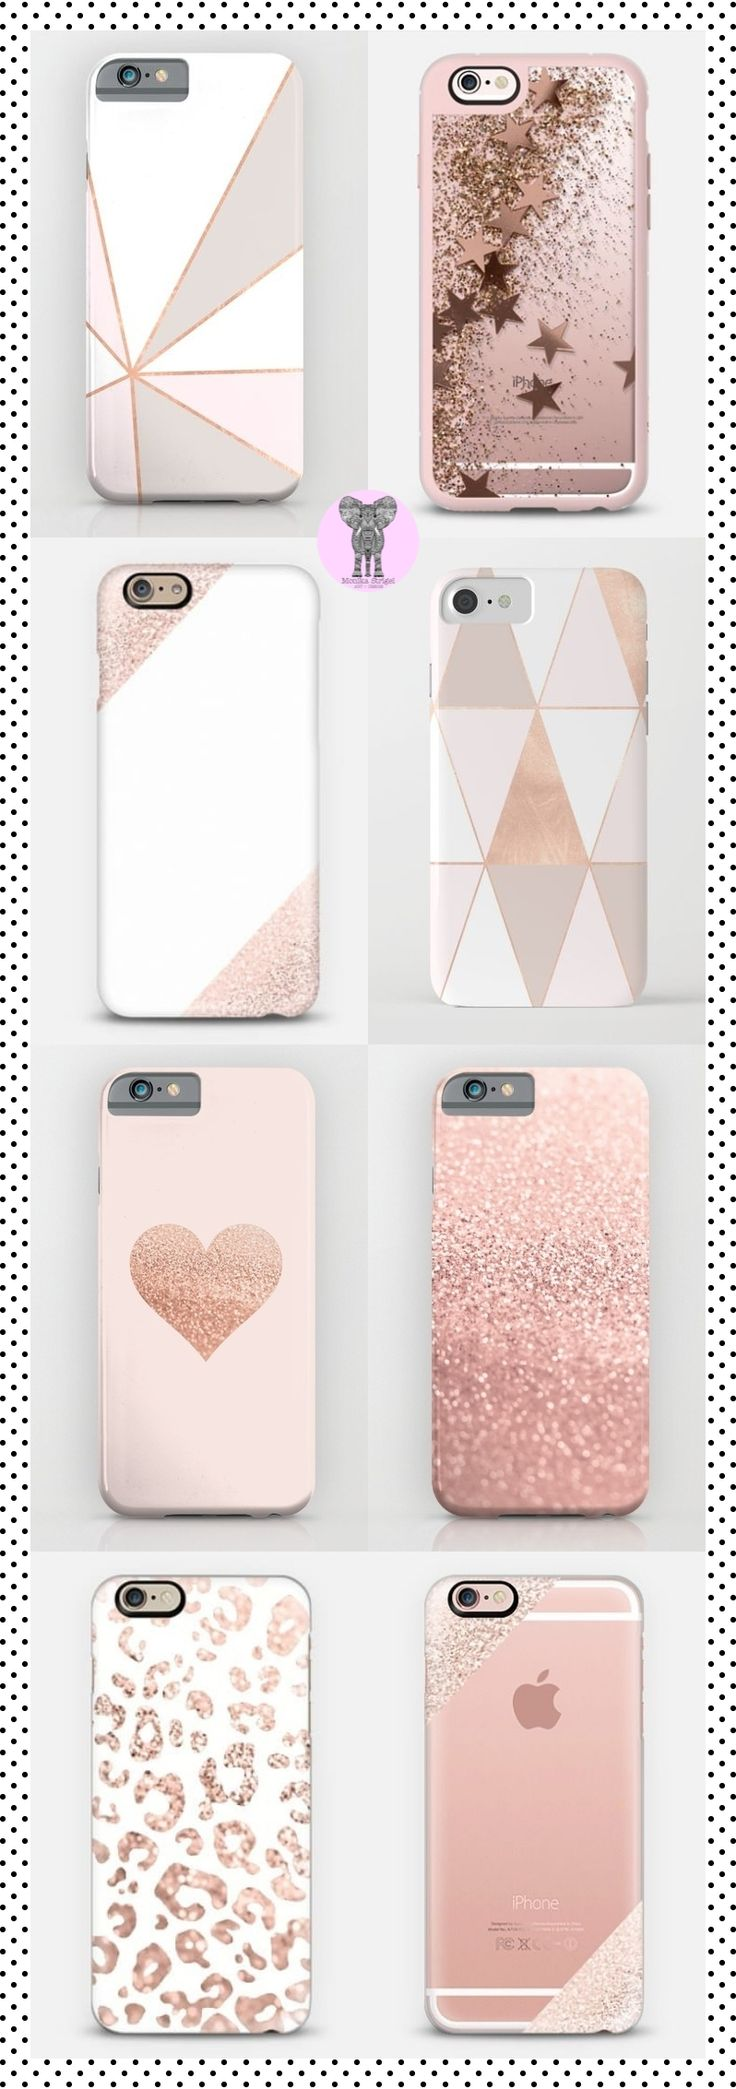 BEST NEW ROSEGOLD PHONE CASE DESIGNS by Monika Strigel $35 Find them on @society6 ! for all iphones and most samsung galaxies - in wonderful rosegold nude and rose white tones!